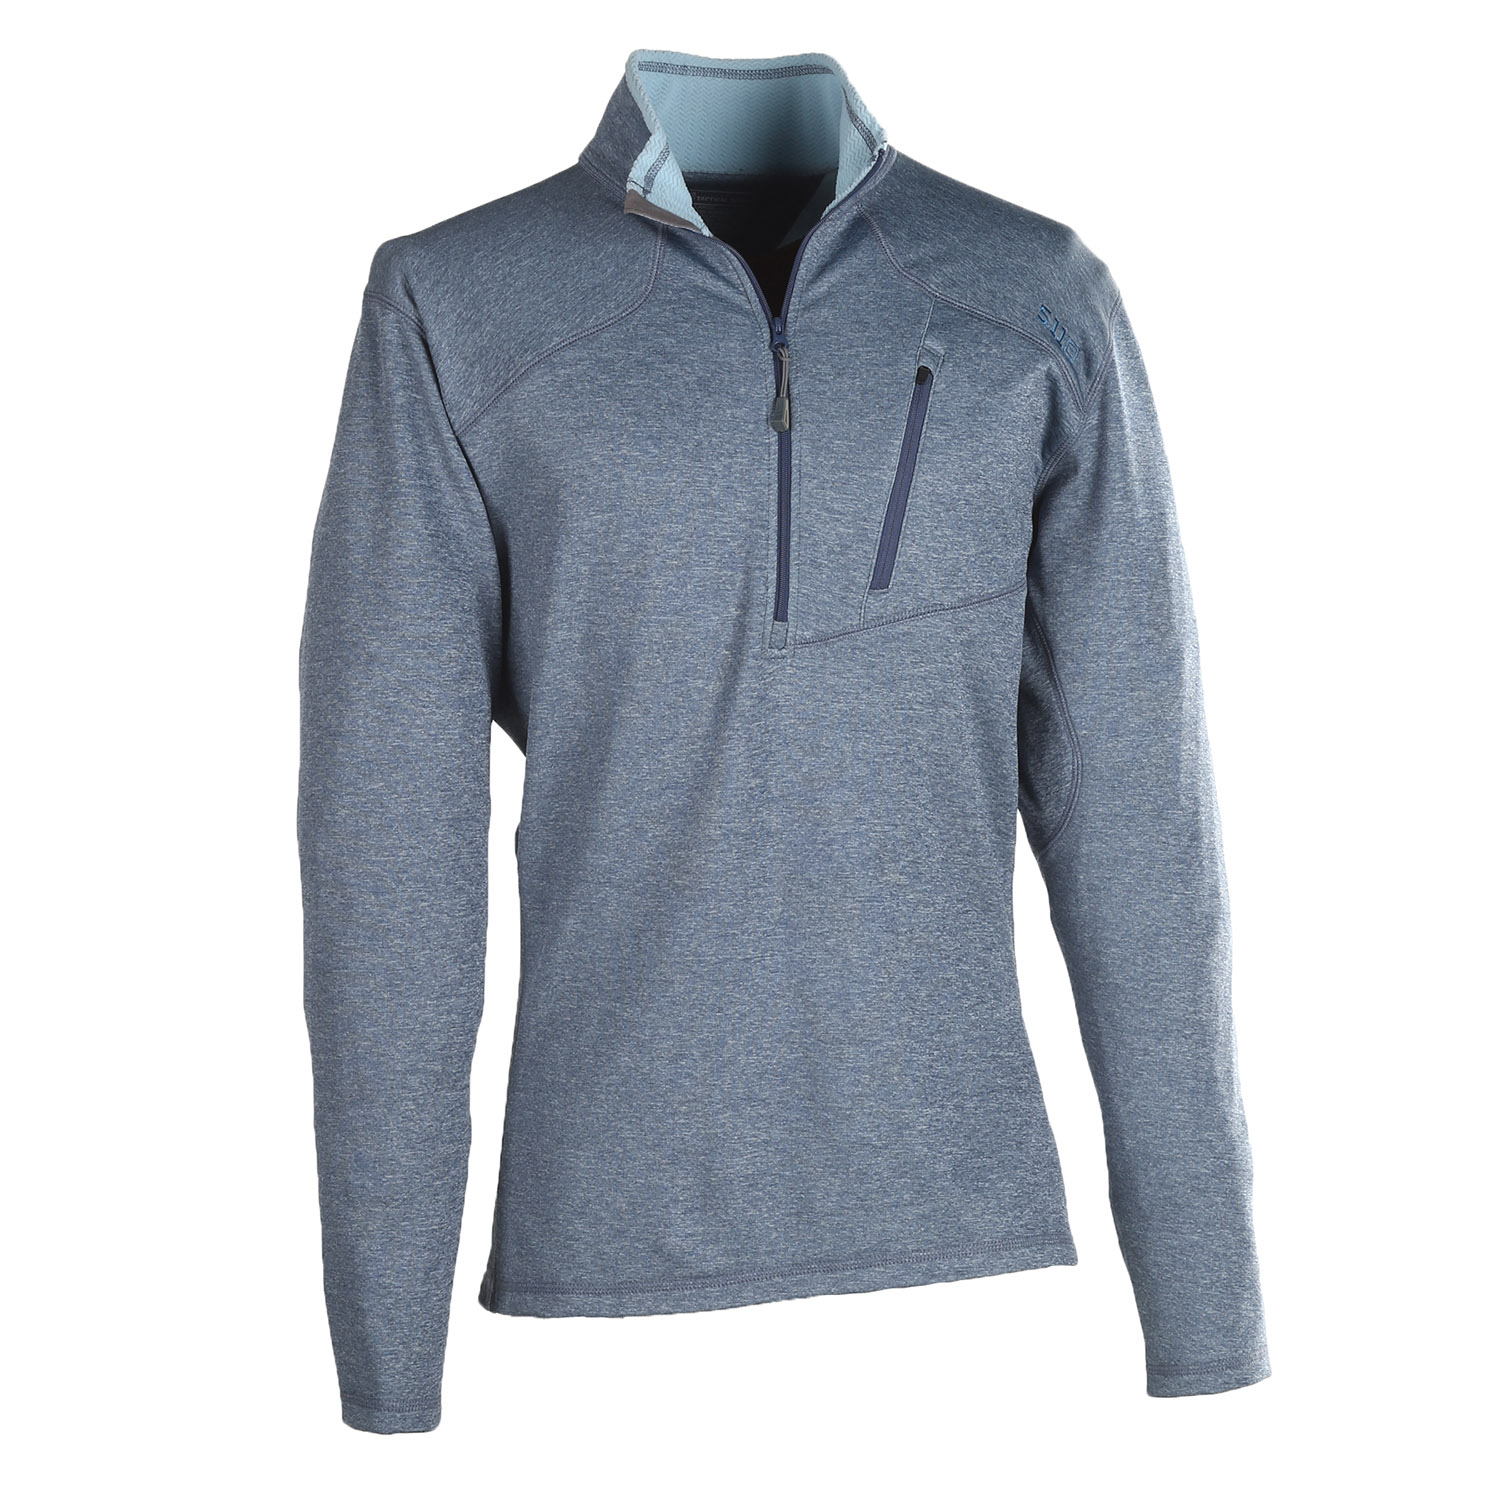 5.11 Tactical Recon Half Zip Fleece